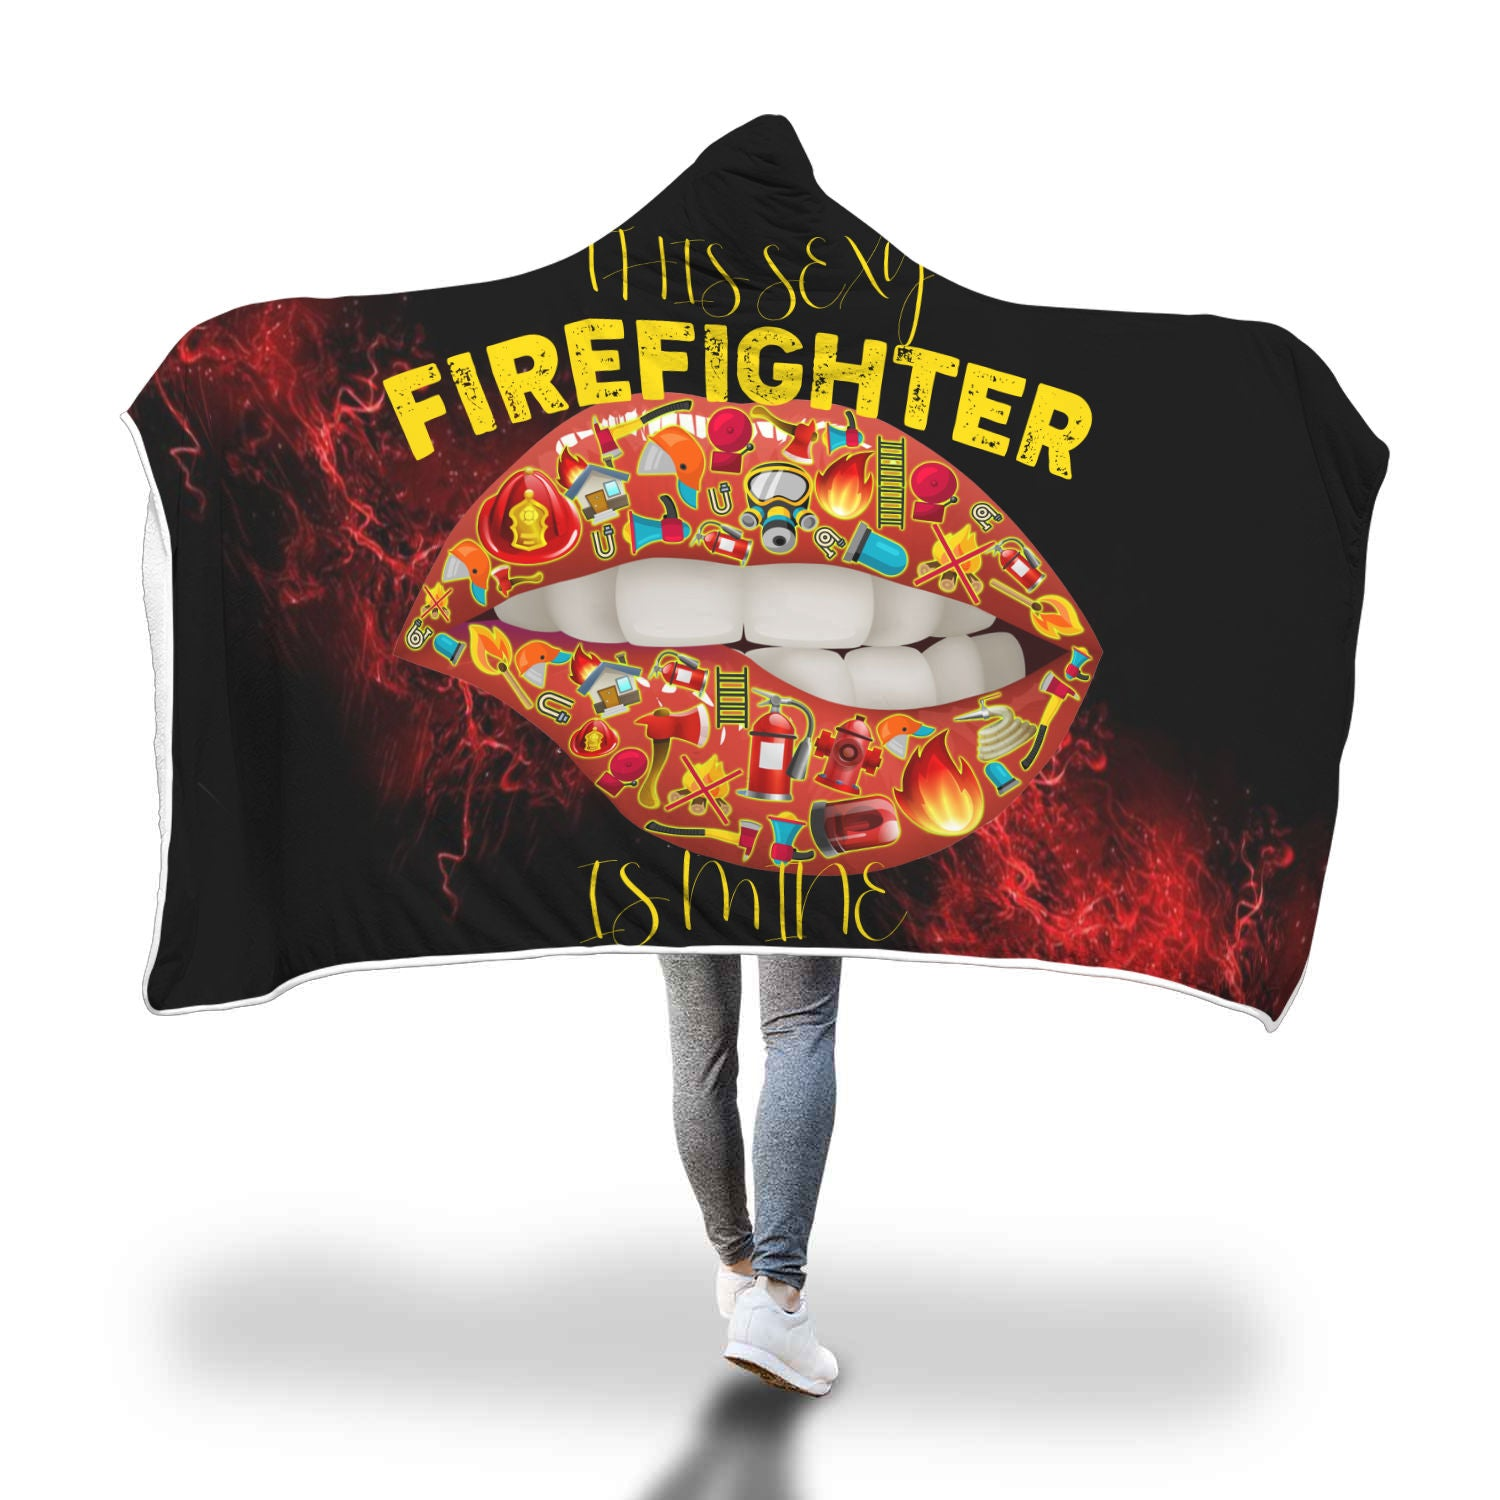 VIRA COZY HOODED BLANKET FOR sexy FIREFIGHTER LOVERS